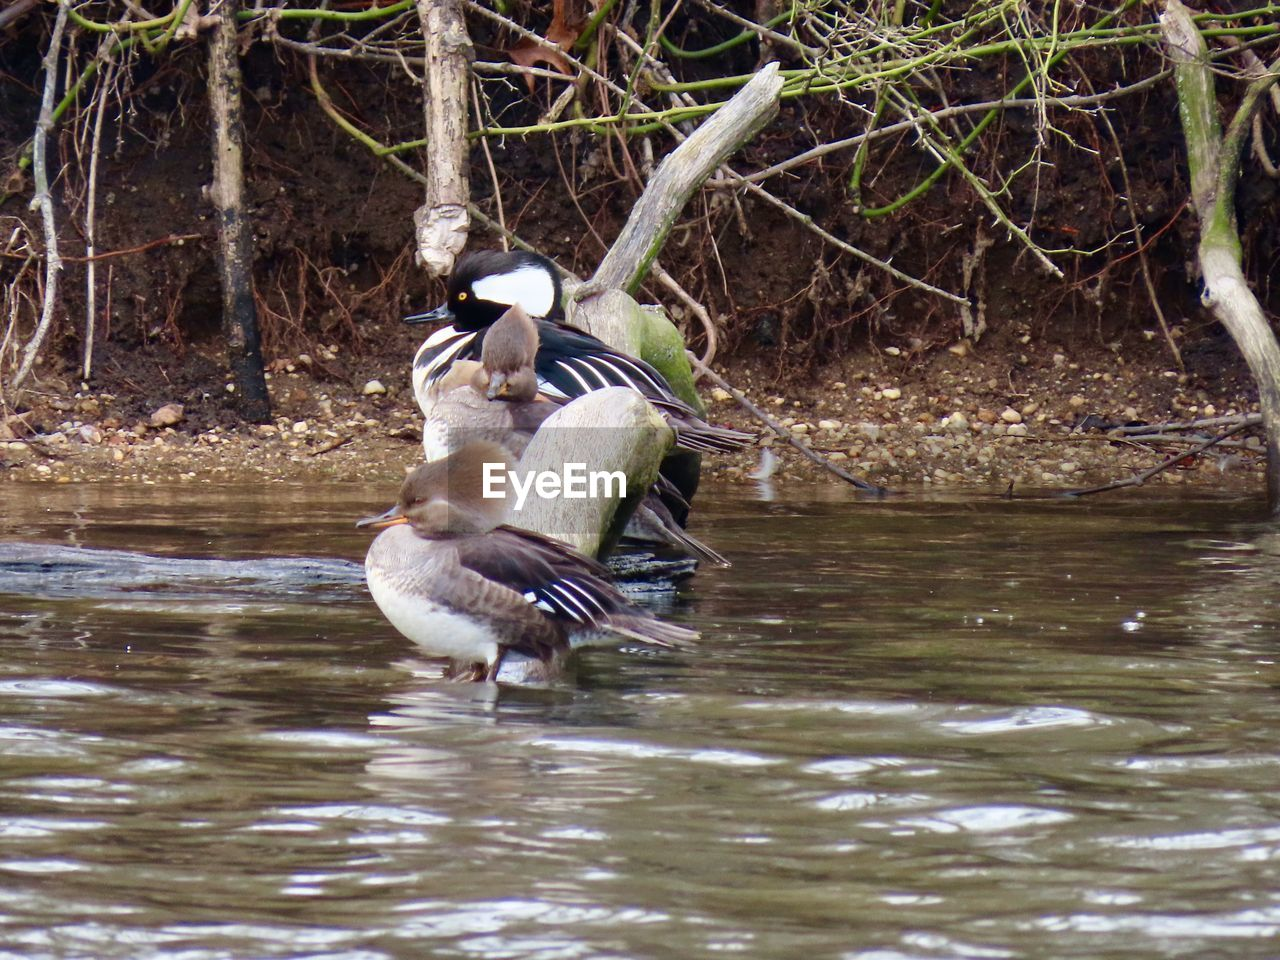 animal themes, animal, bird, animal wildlife, animals in the wild, vertebrate, one animal, water, waterfront, nature, lake, no people, day, duck, water bird, outdoors, poultry, flying, beauty in nature